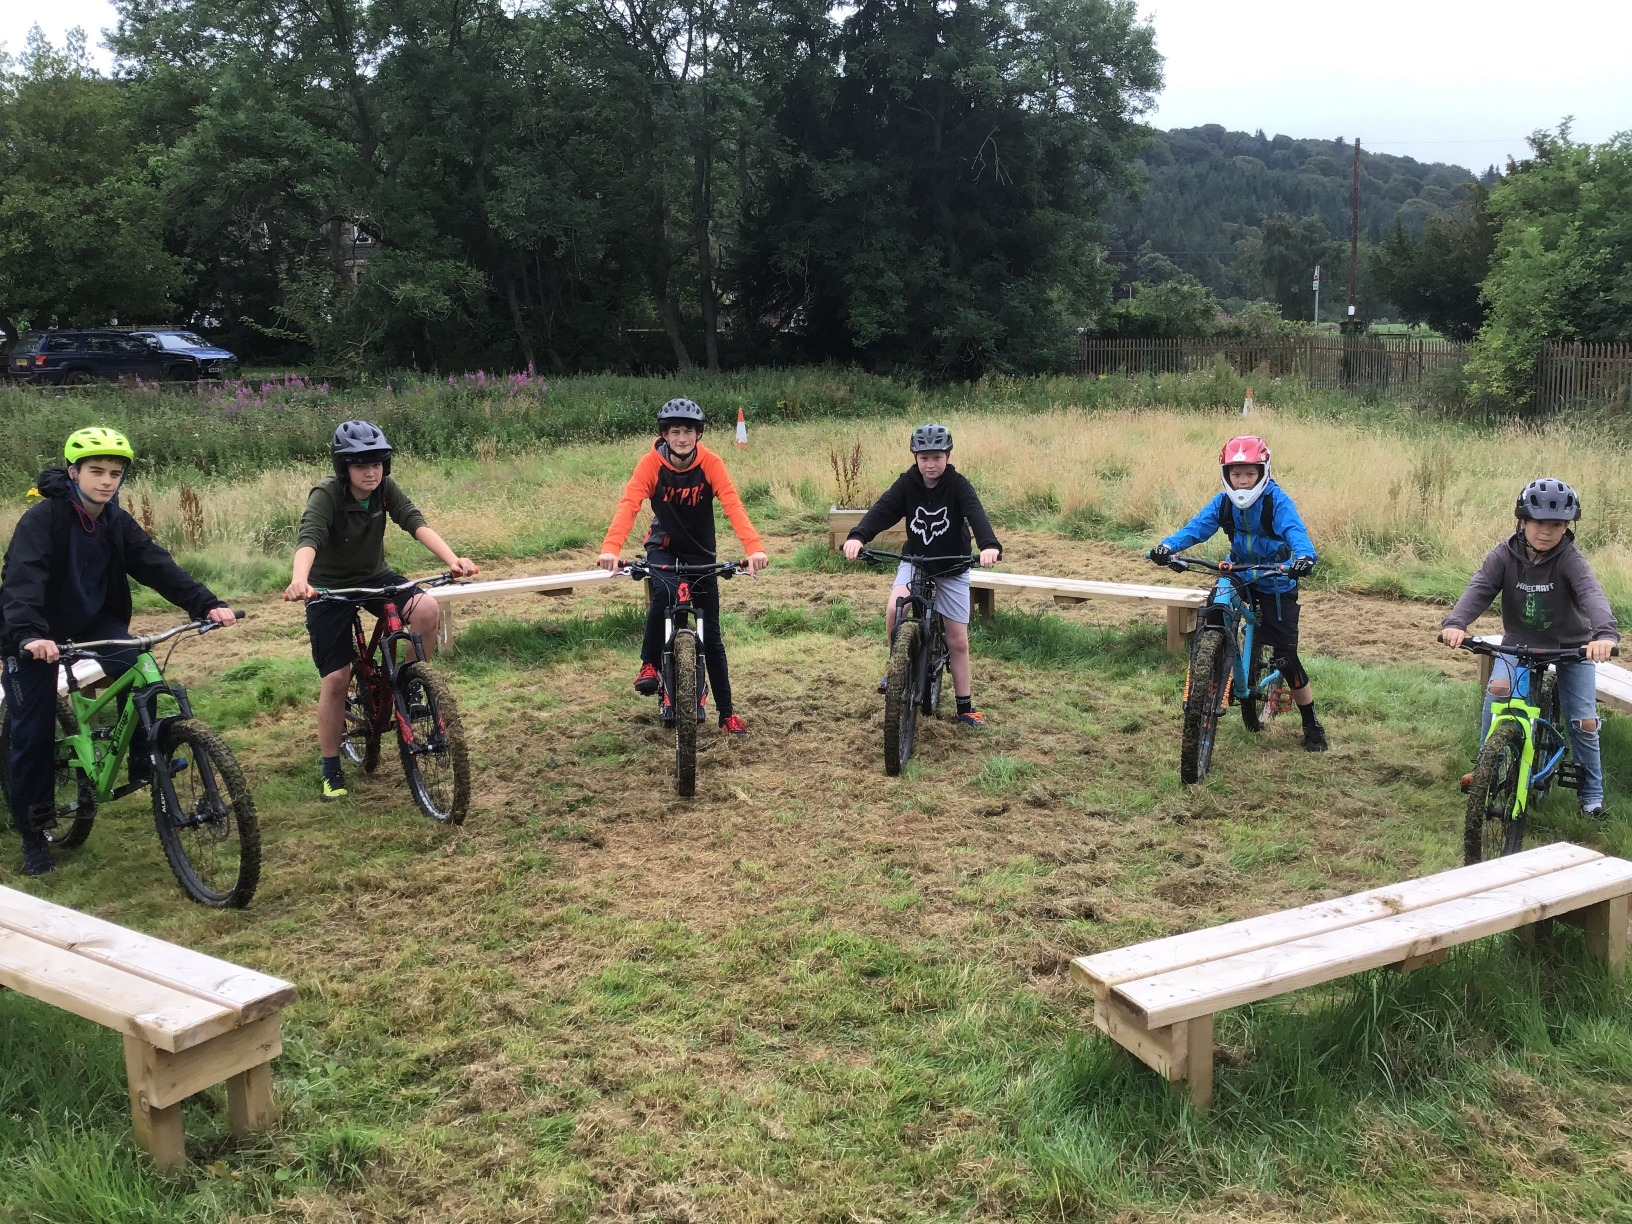 Photograph of stow bikers on proposed pump track site